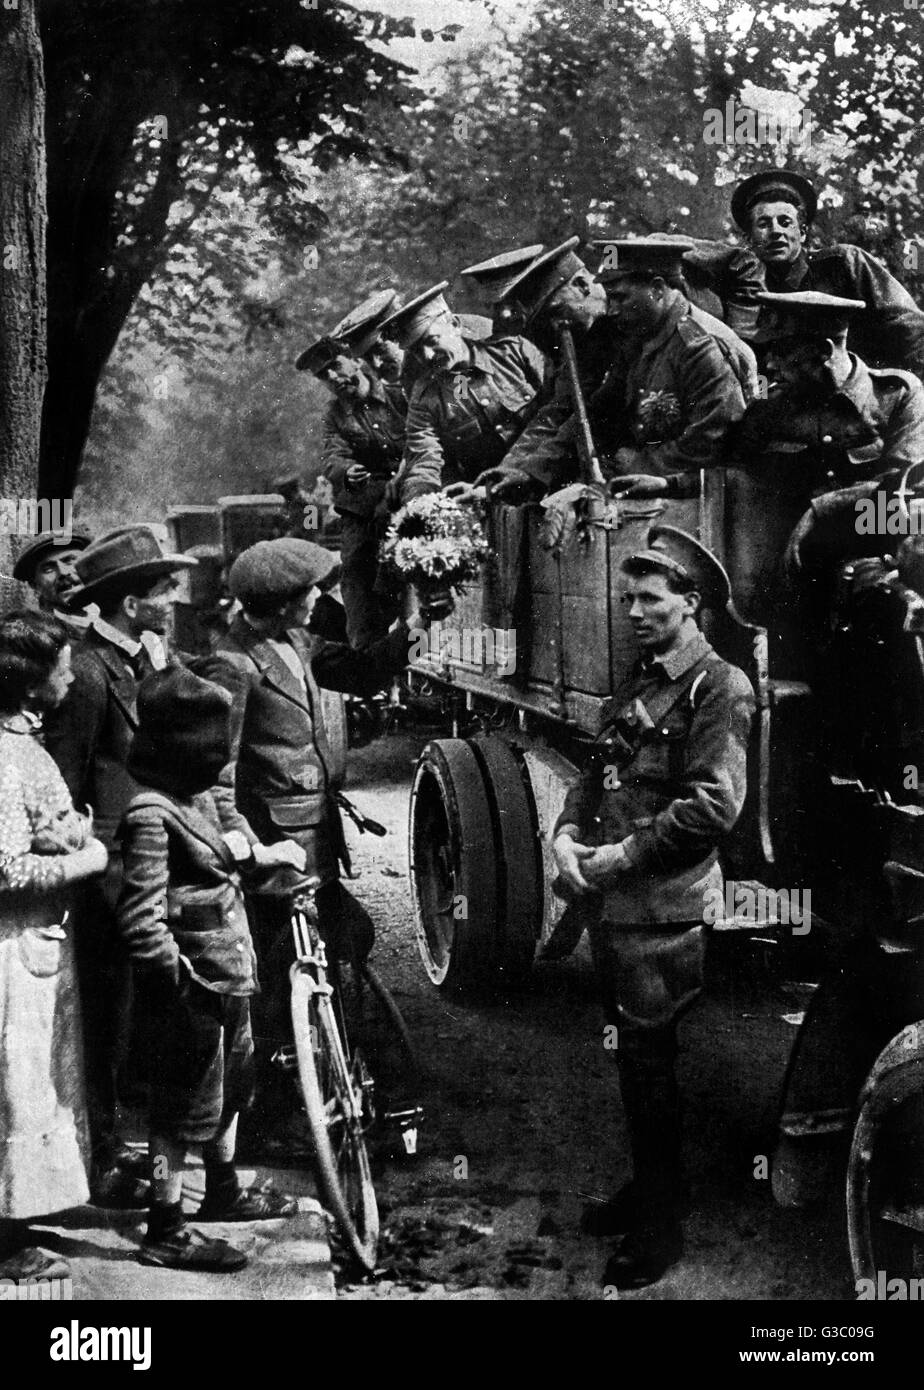 WW1 - British Tommies welcomed on arrival in France     Date: 1914 - Stock Image